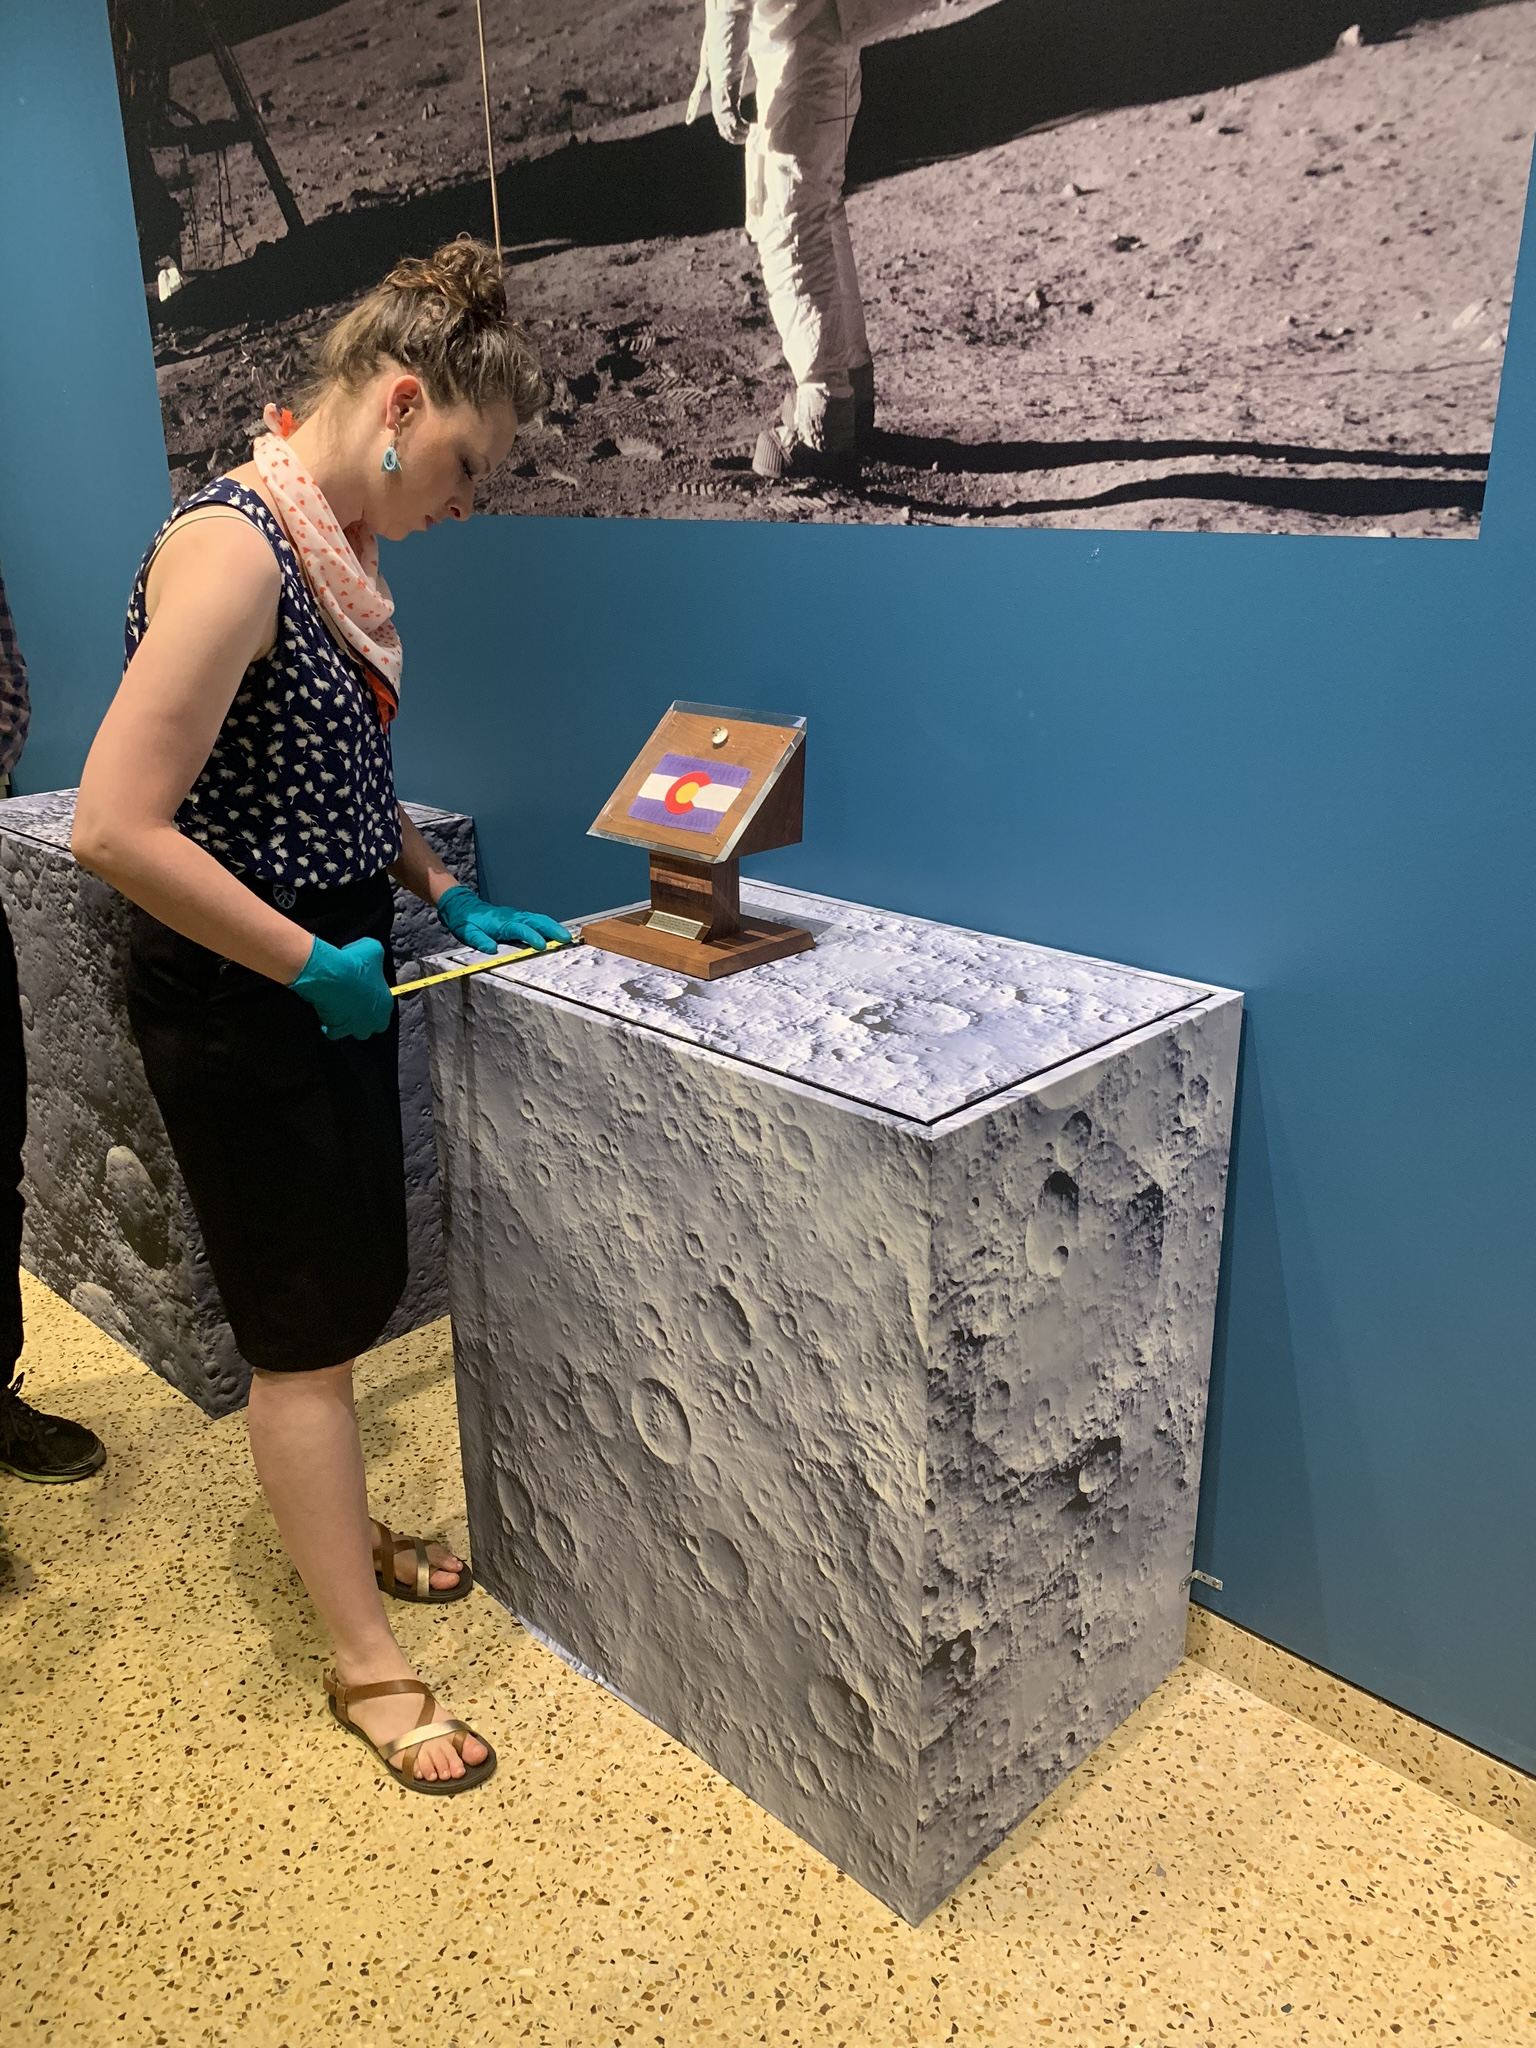 Photo of Kimberly Kronwell at Apollo 11 Exhibit